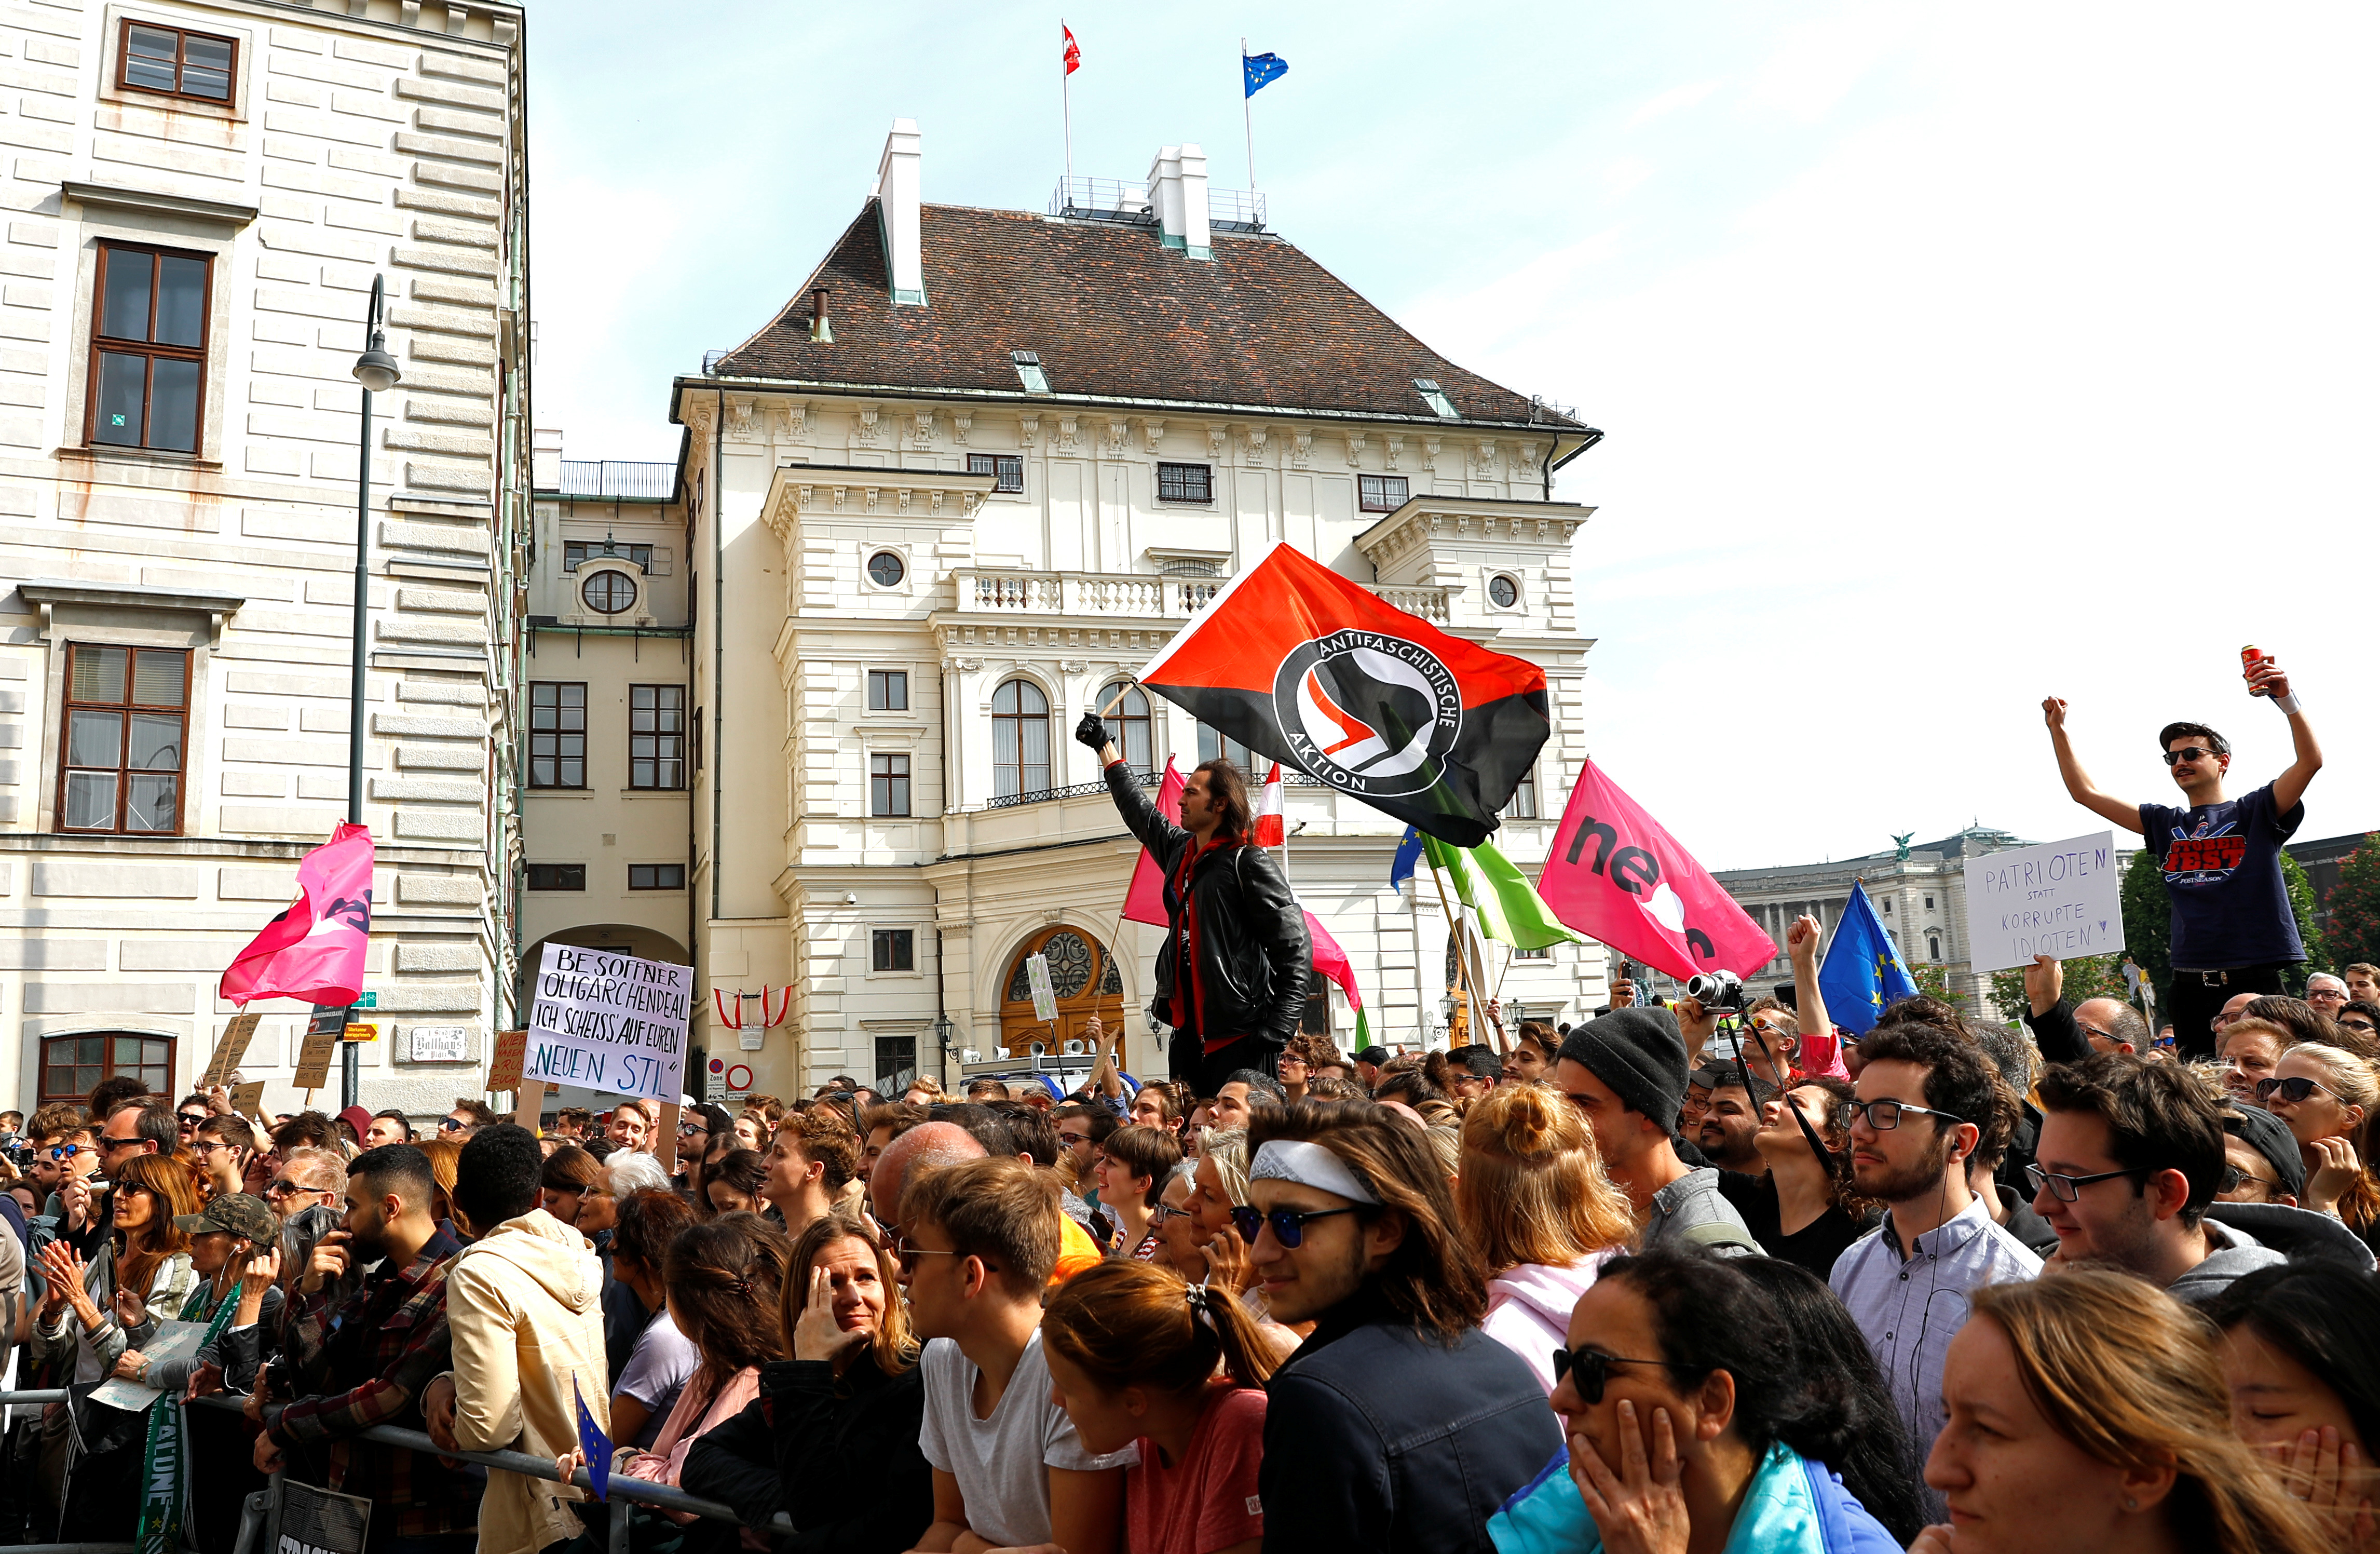 People protest in front of the Chancellery in Vienna, Austria, May 18, 2019.